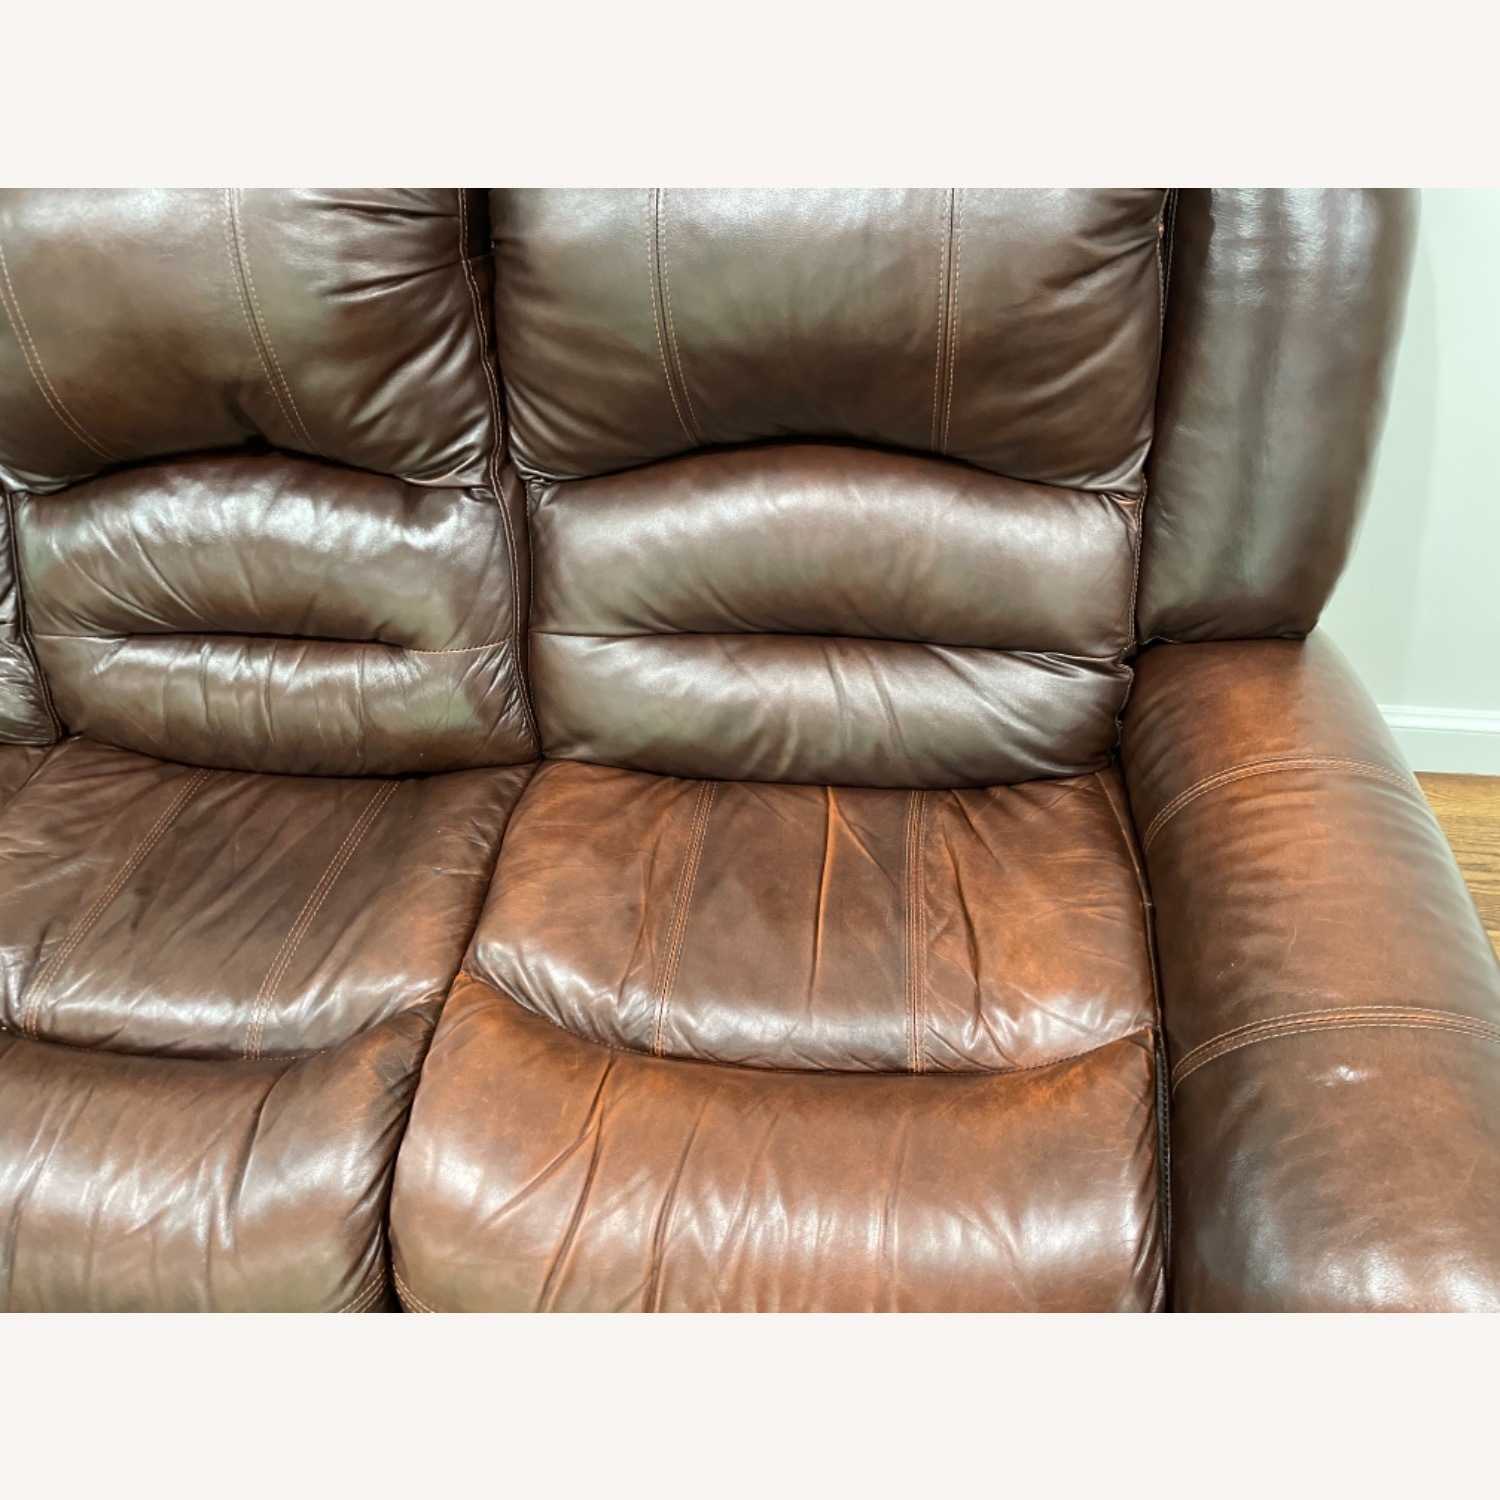 La-Z-Boy 3 Seat Leather Sofa and Recliner - image-4